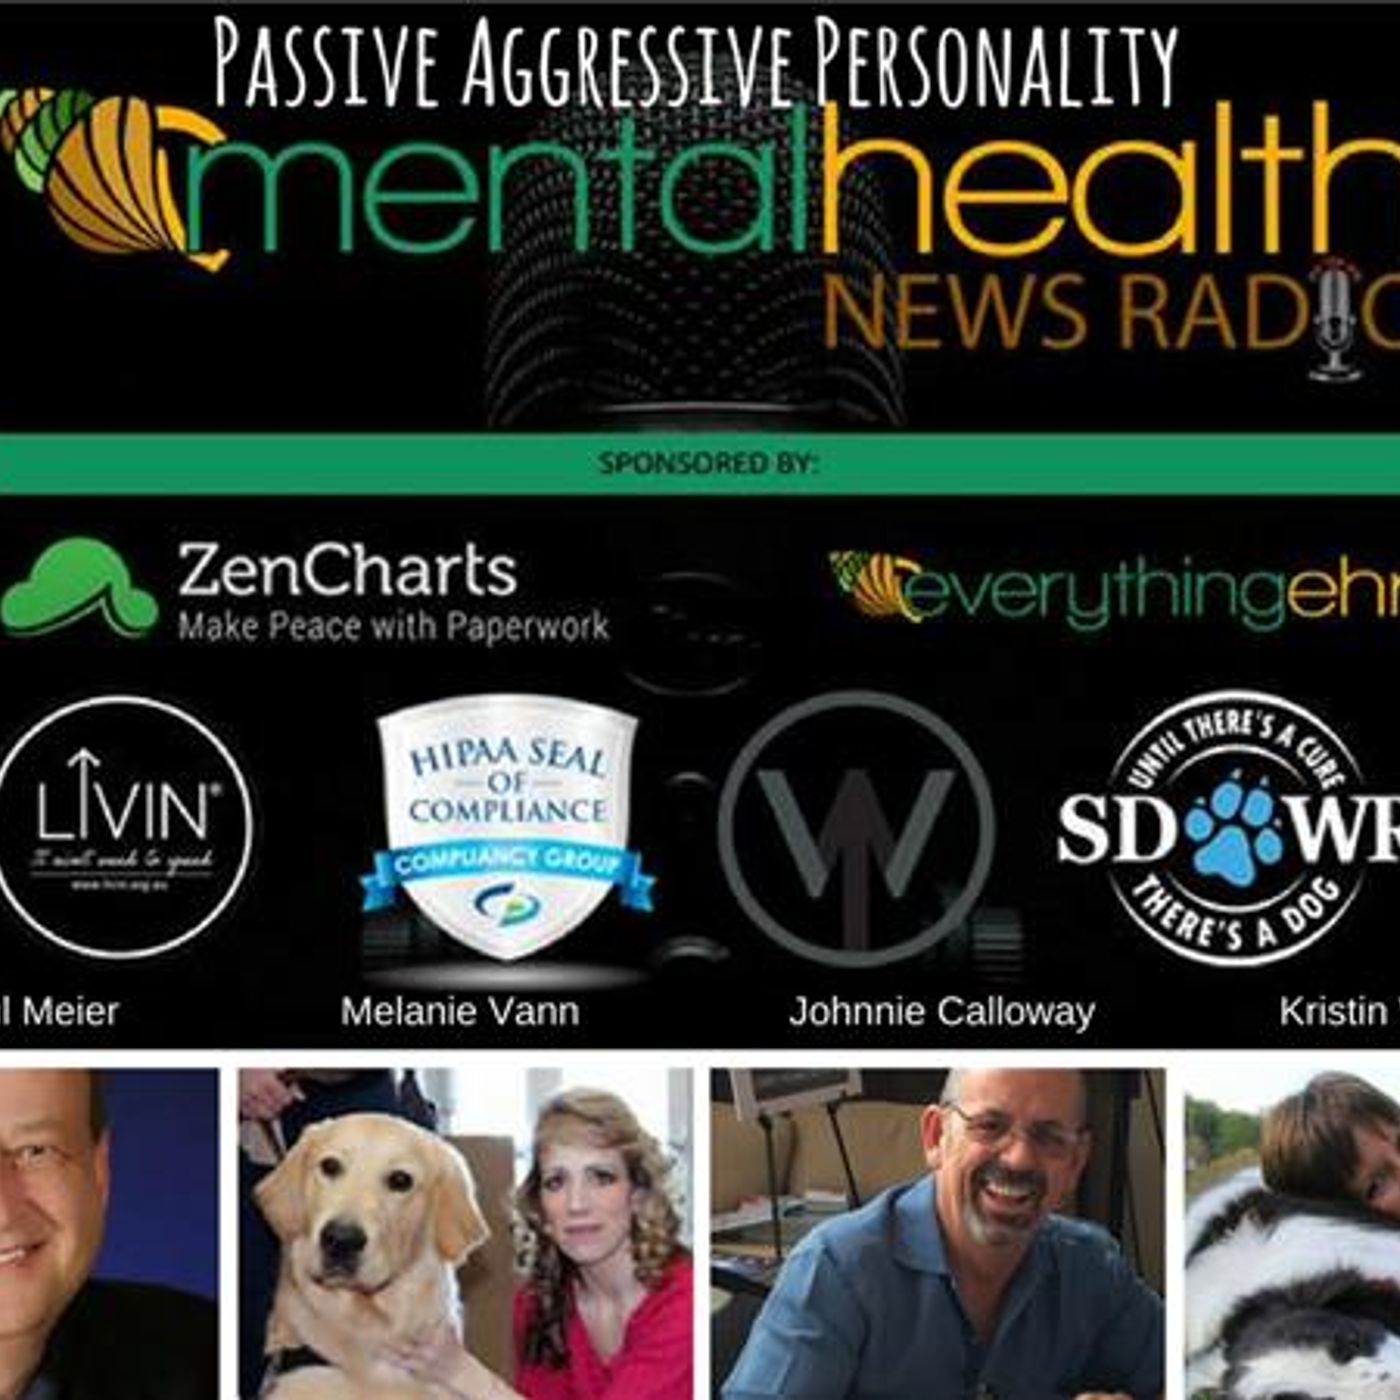 Mental Health News Radio - Round Table Discussions with Dr. Paul Meier: Passive Aggressive Personality